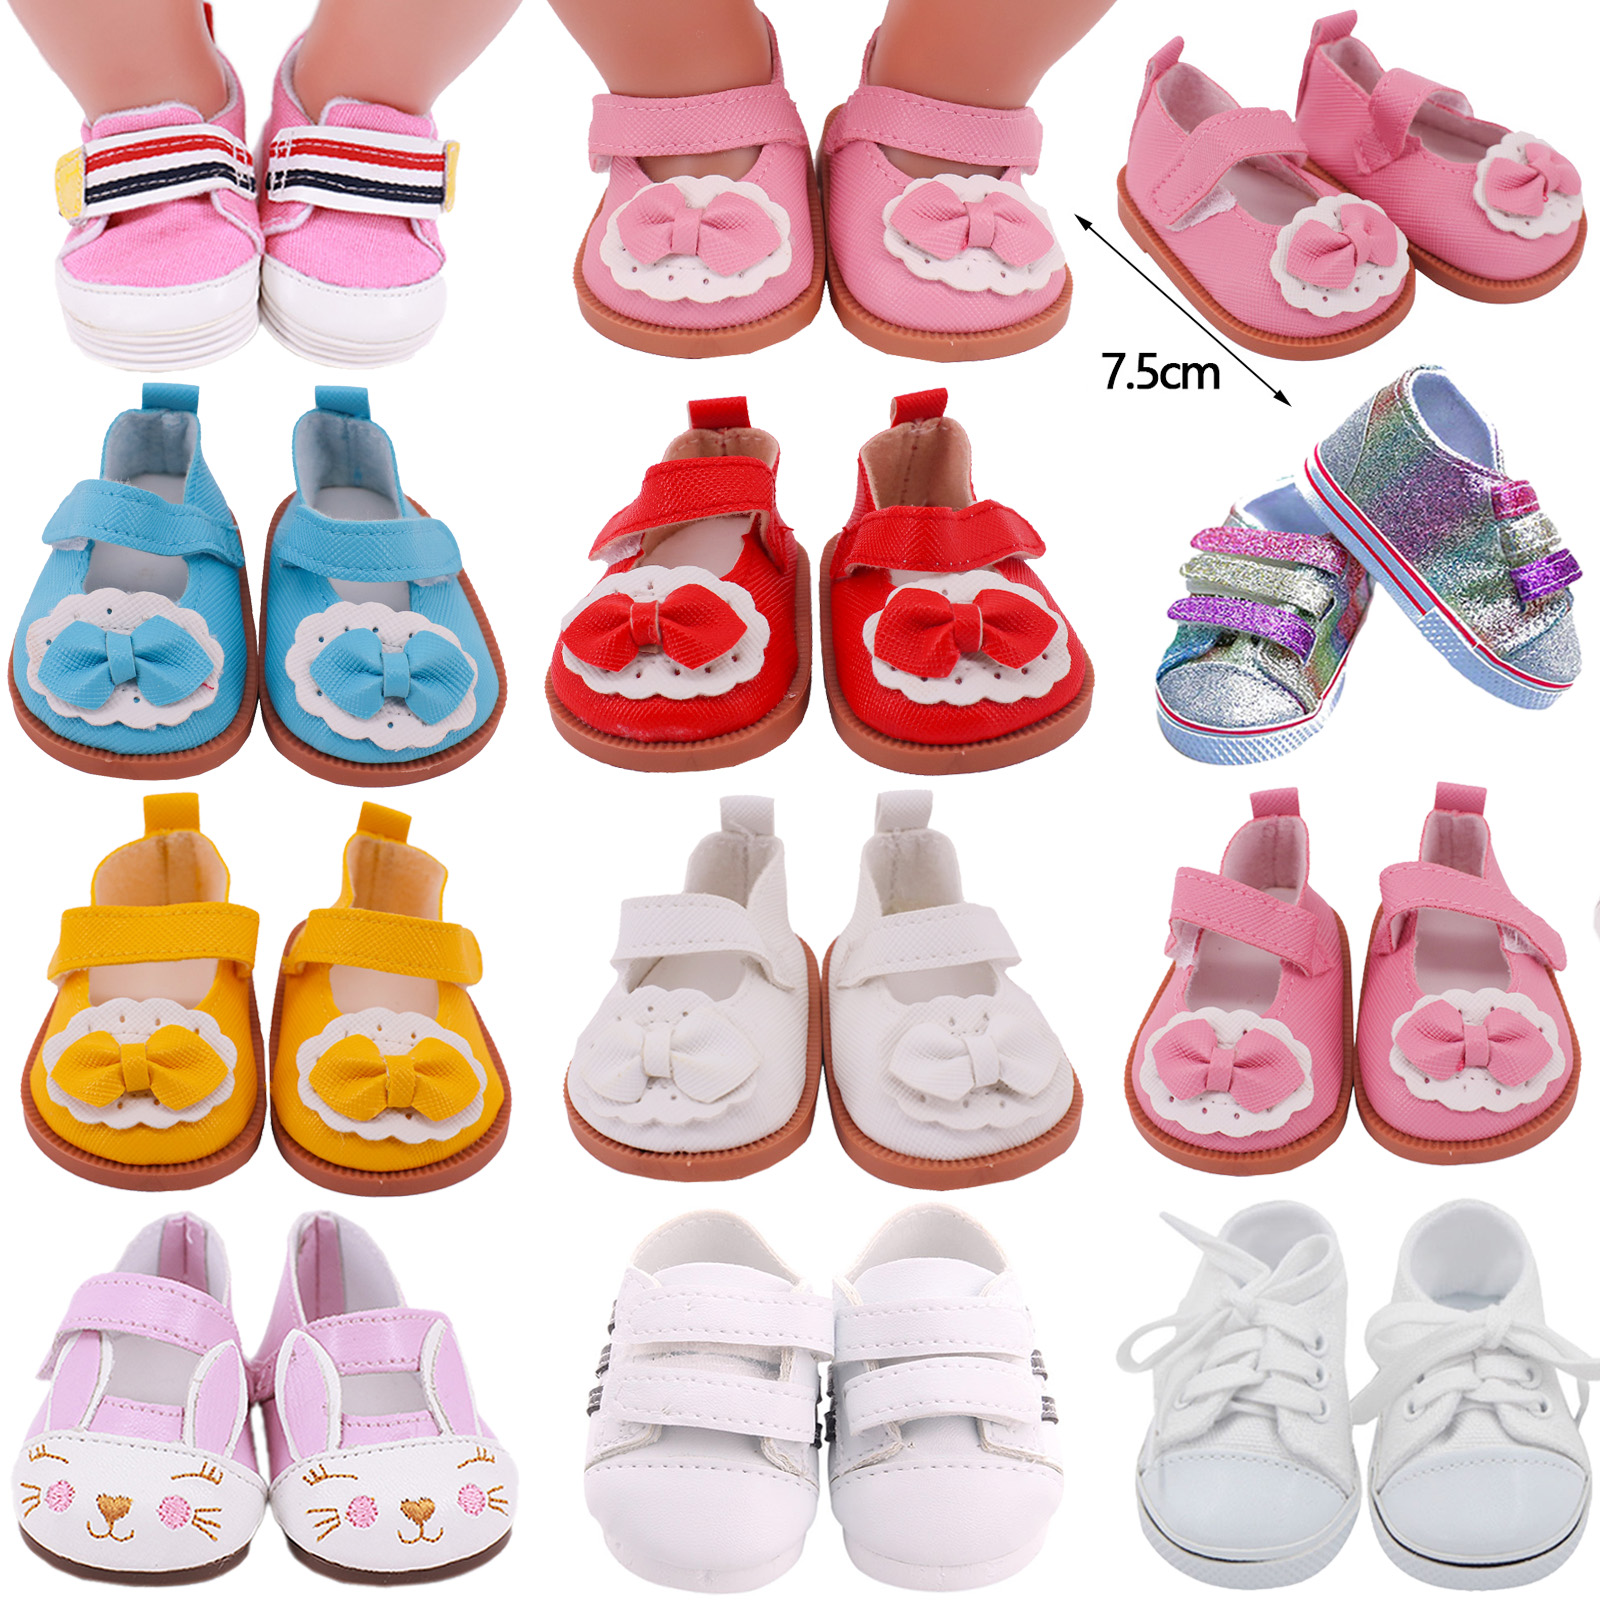 7Cm Doll Clothes Doll Shoes Sequin Canvas Shoes For 18 Inch American of girl`s&43Cm Baby New Born Reborn Doll Toy 1/3 BJD Blythe